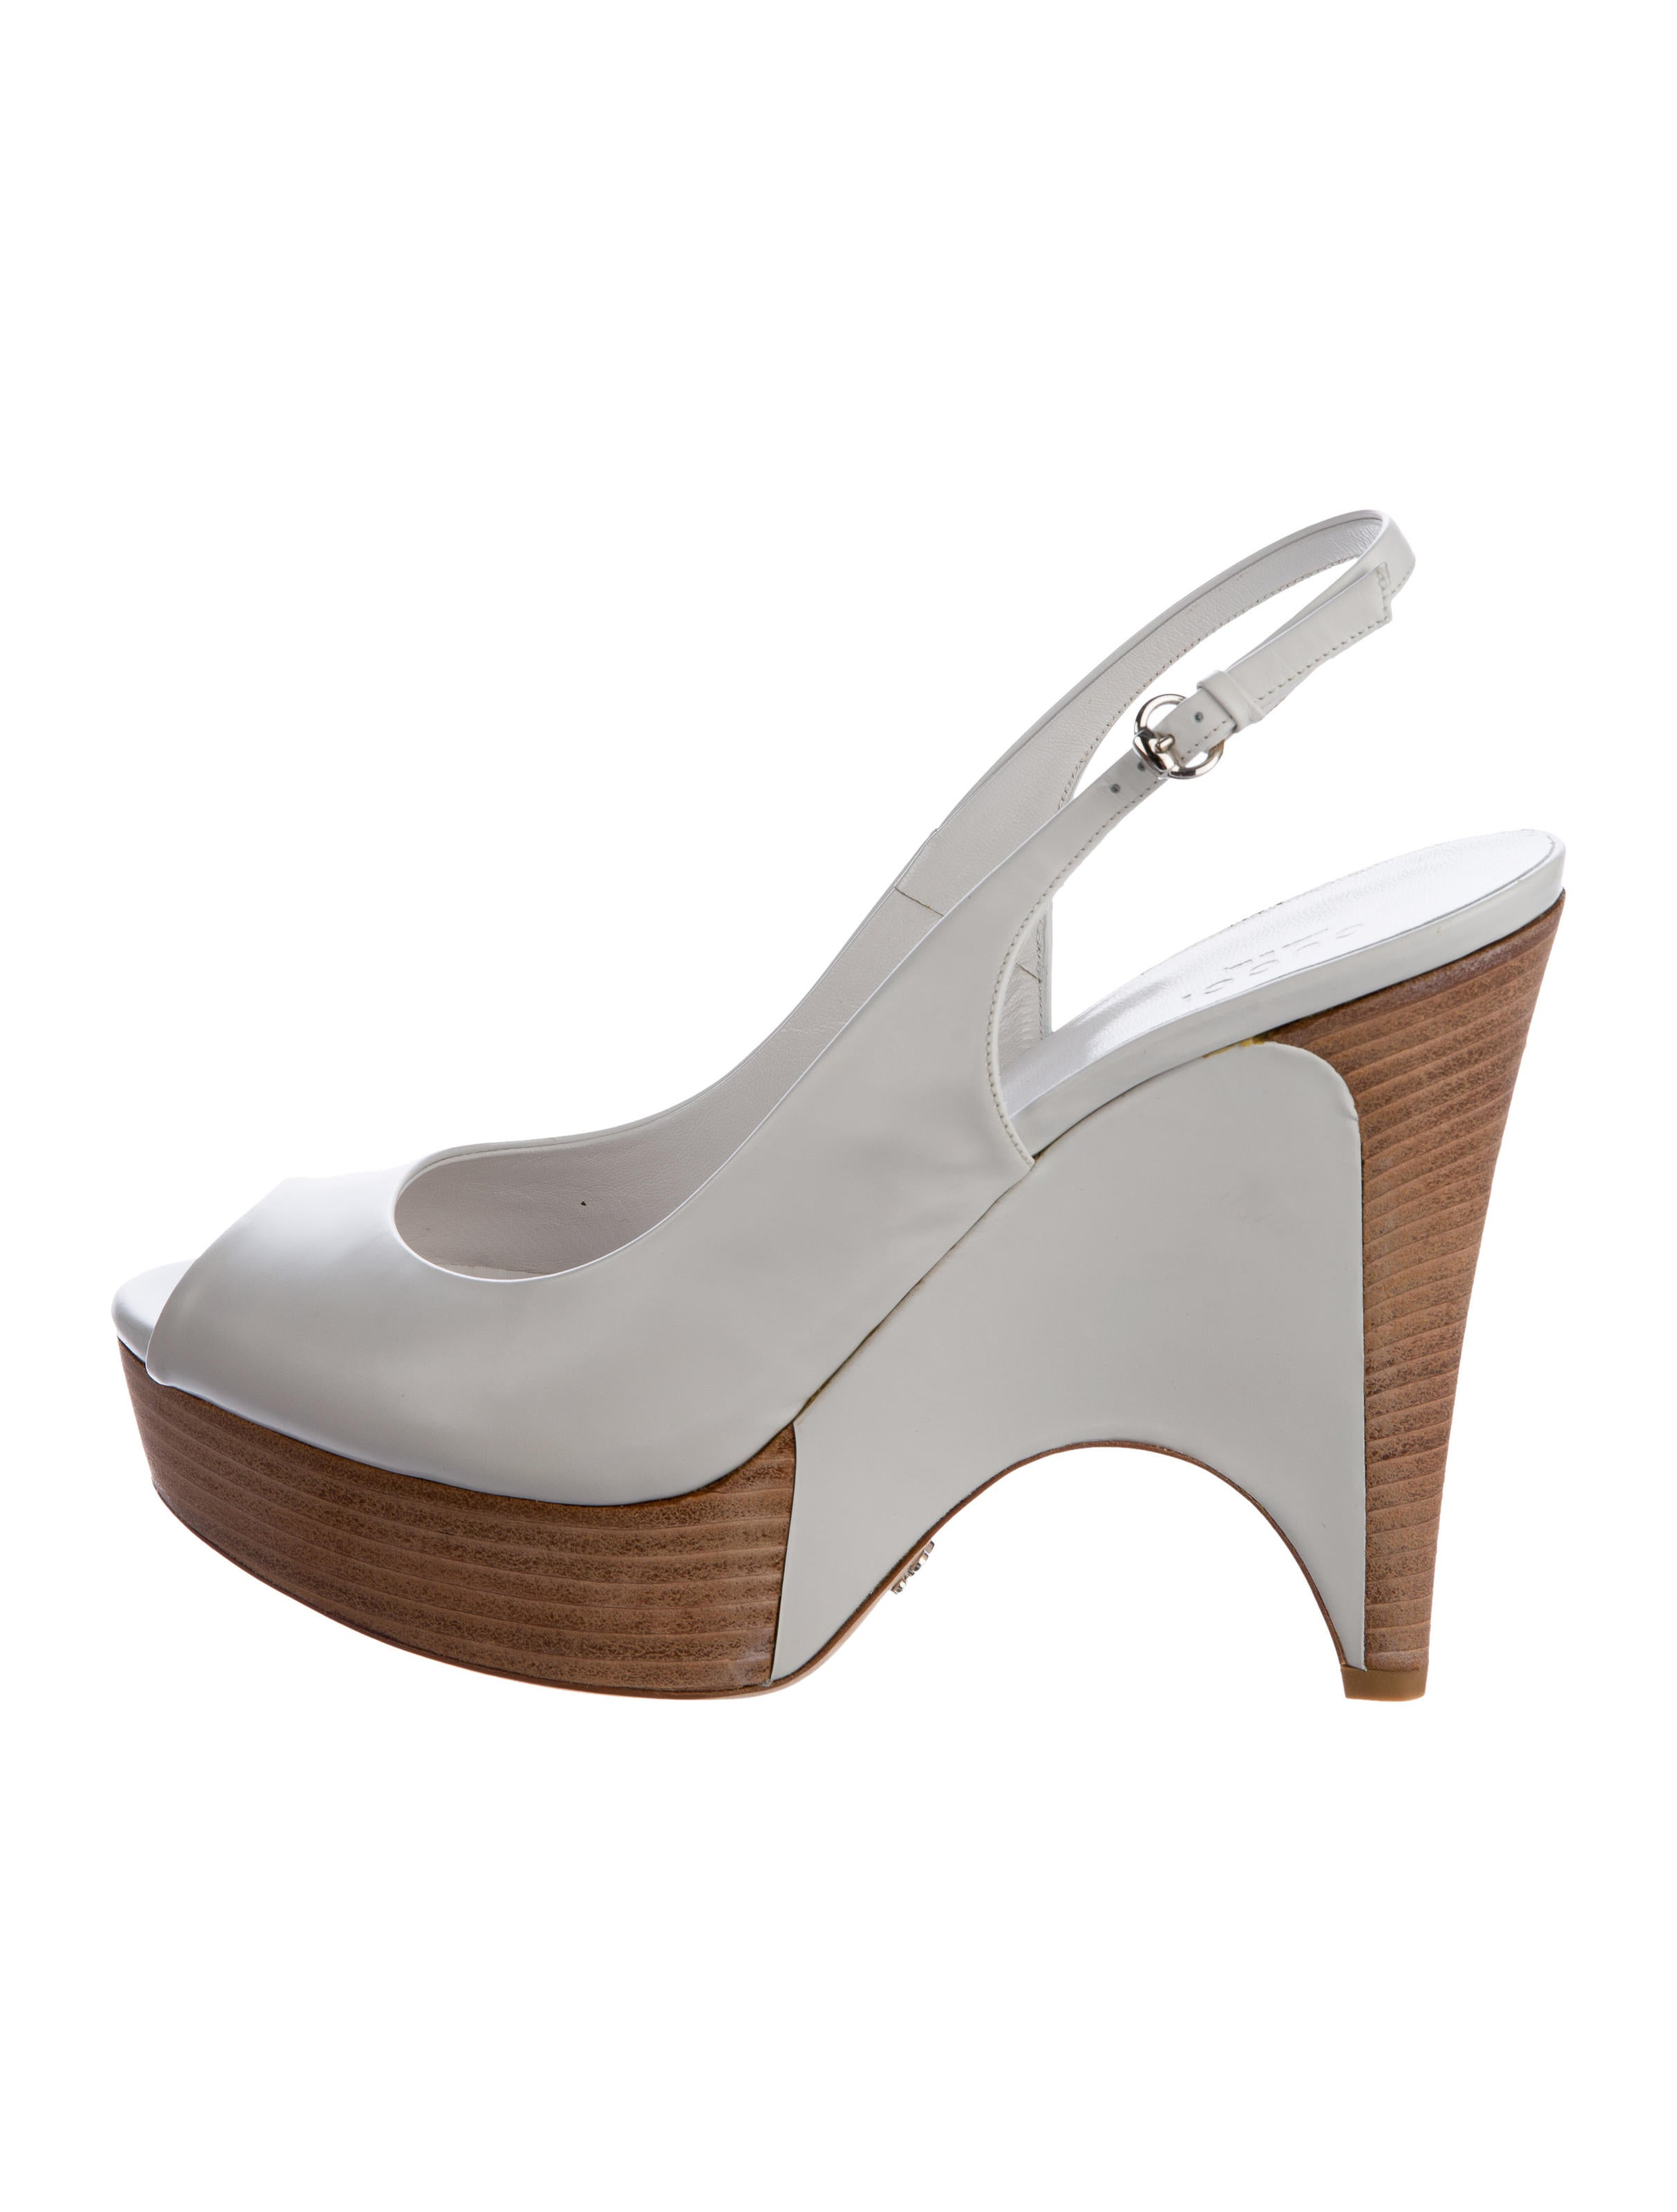 Toe Taps For Women Shoes